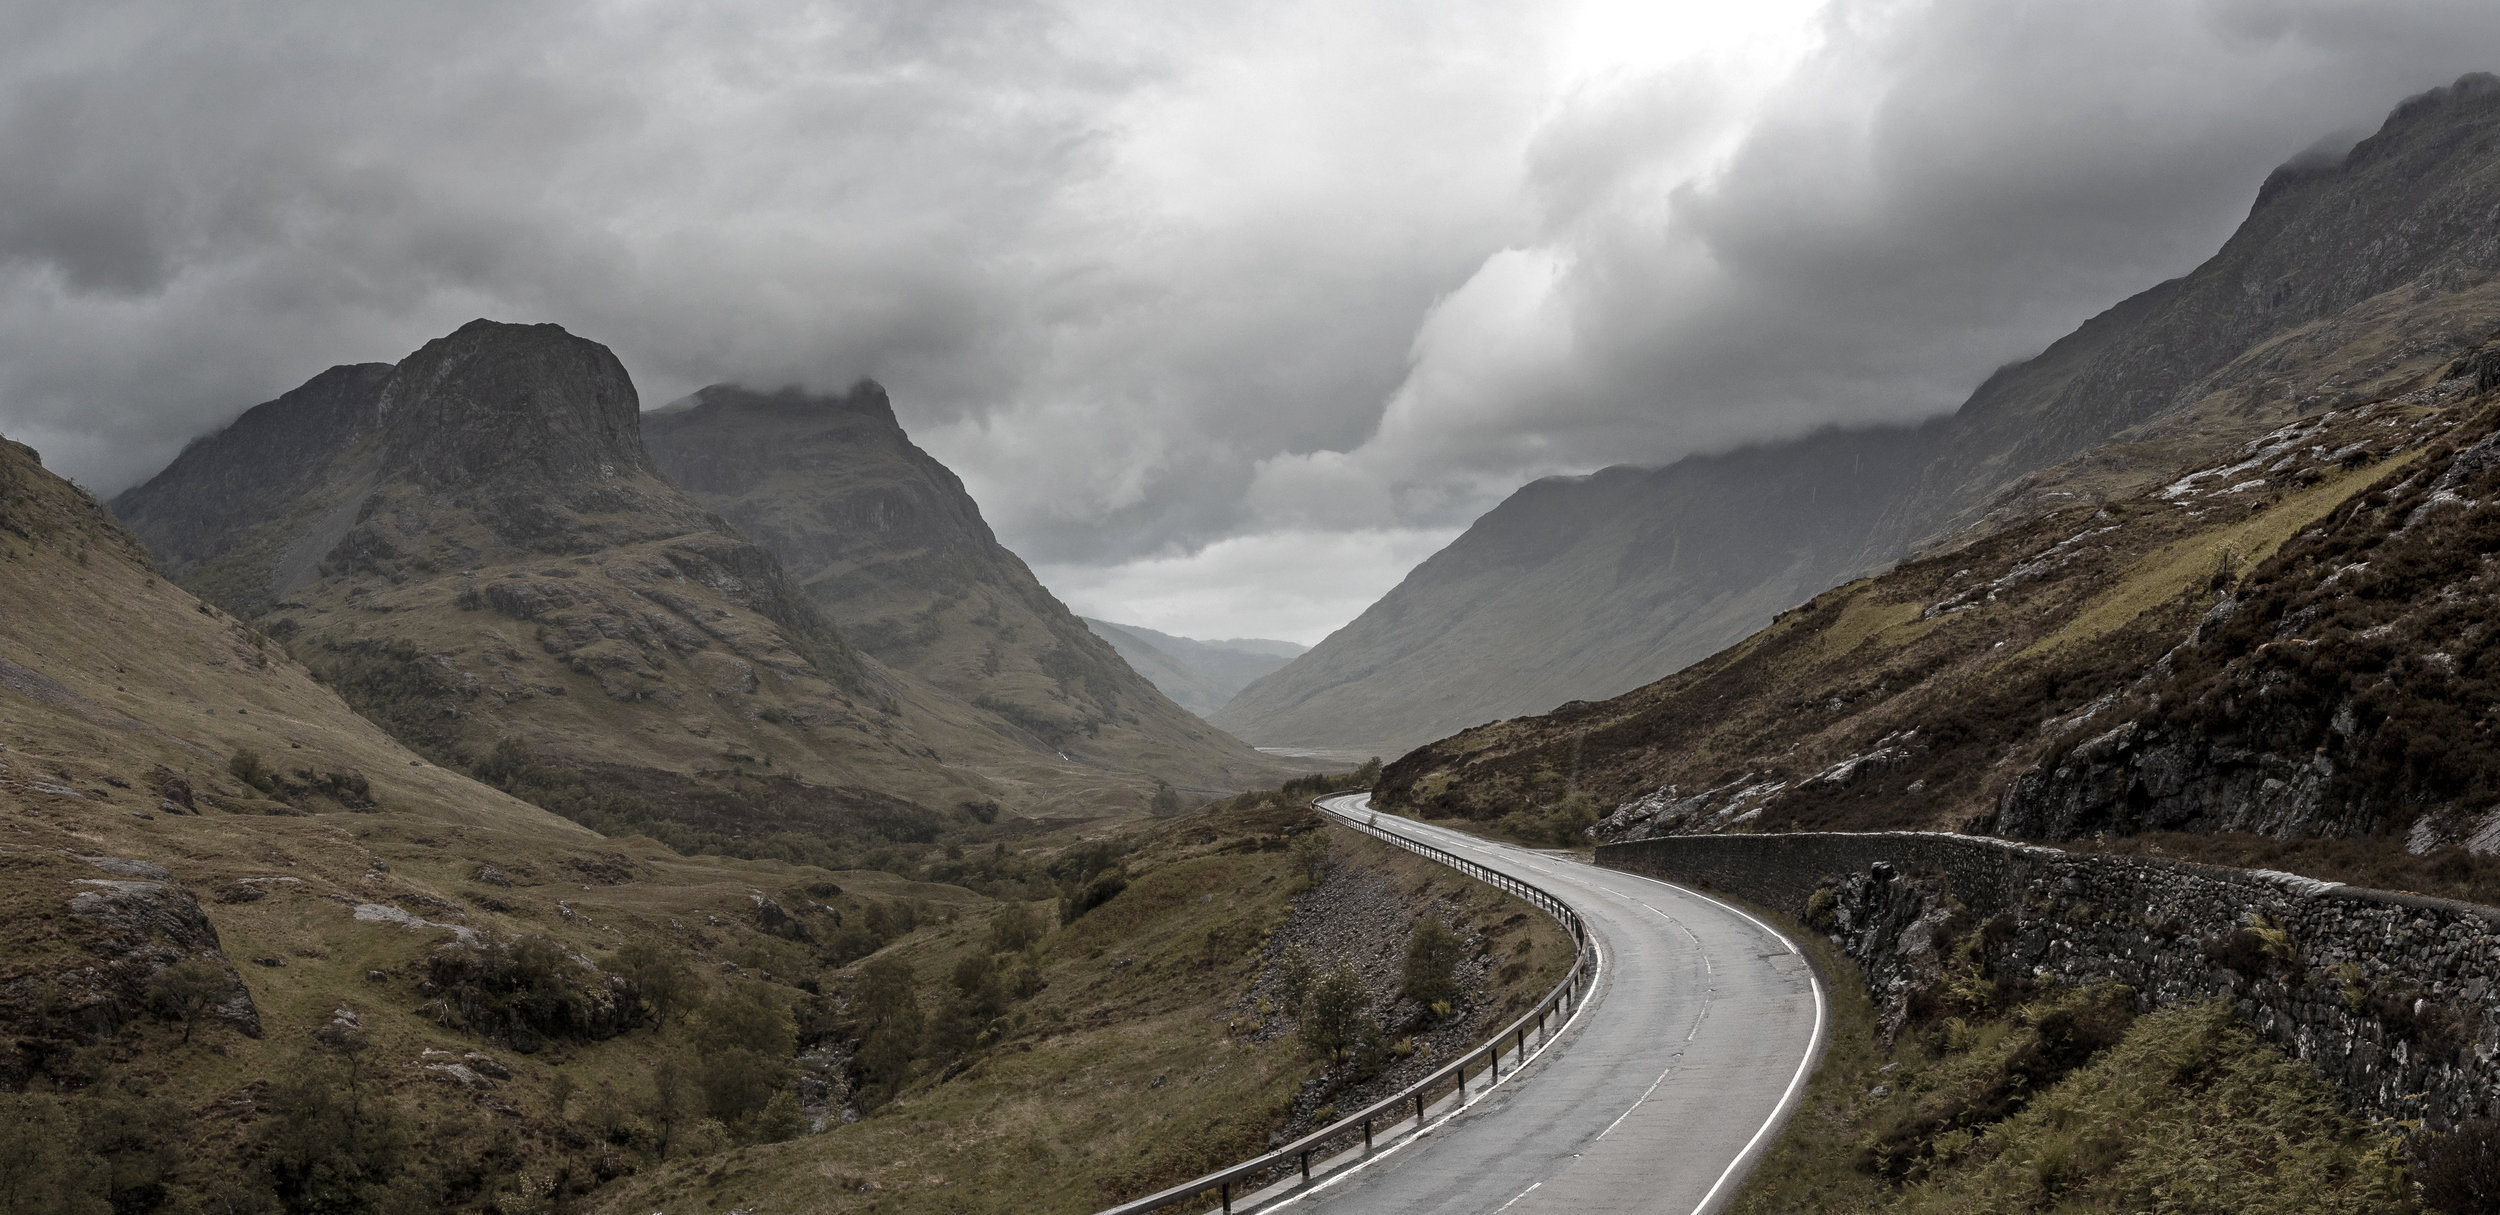 A scotland adventure with Vanguard Photo - Read the story from Vanguard Photo UK brand ambassador, Matt Holland as he heads to Glencoe, Scotland with friends to put the Veo 2 Go and other items through their paces in the Scottish highlands.